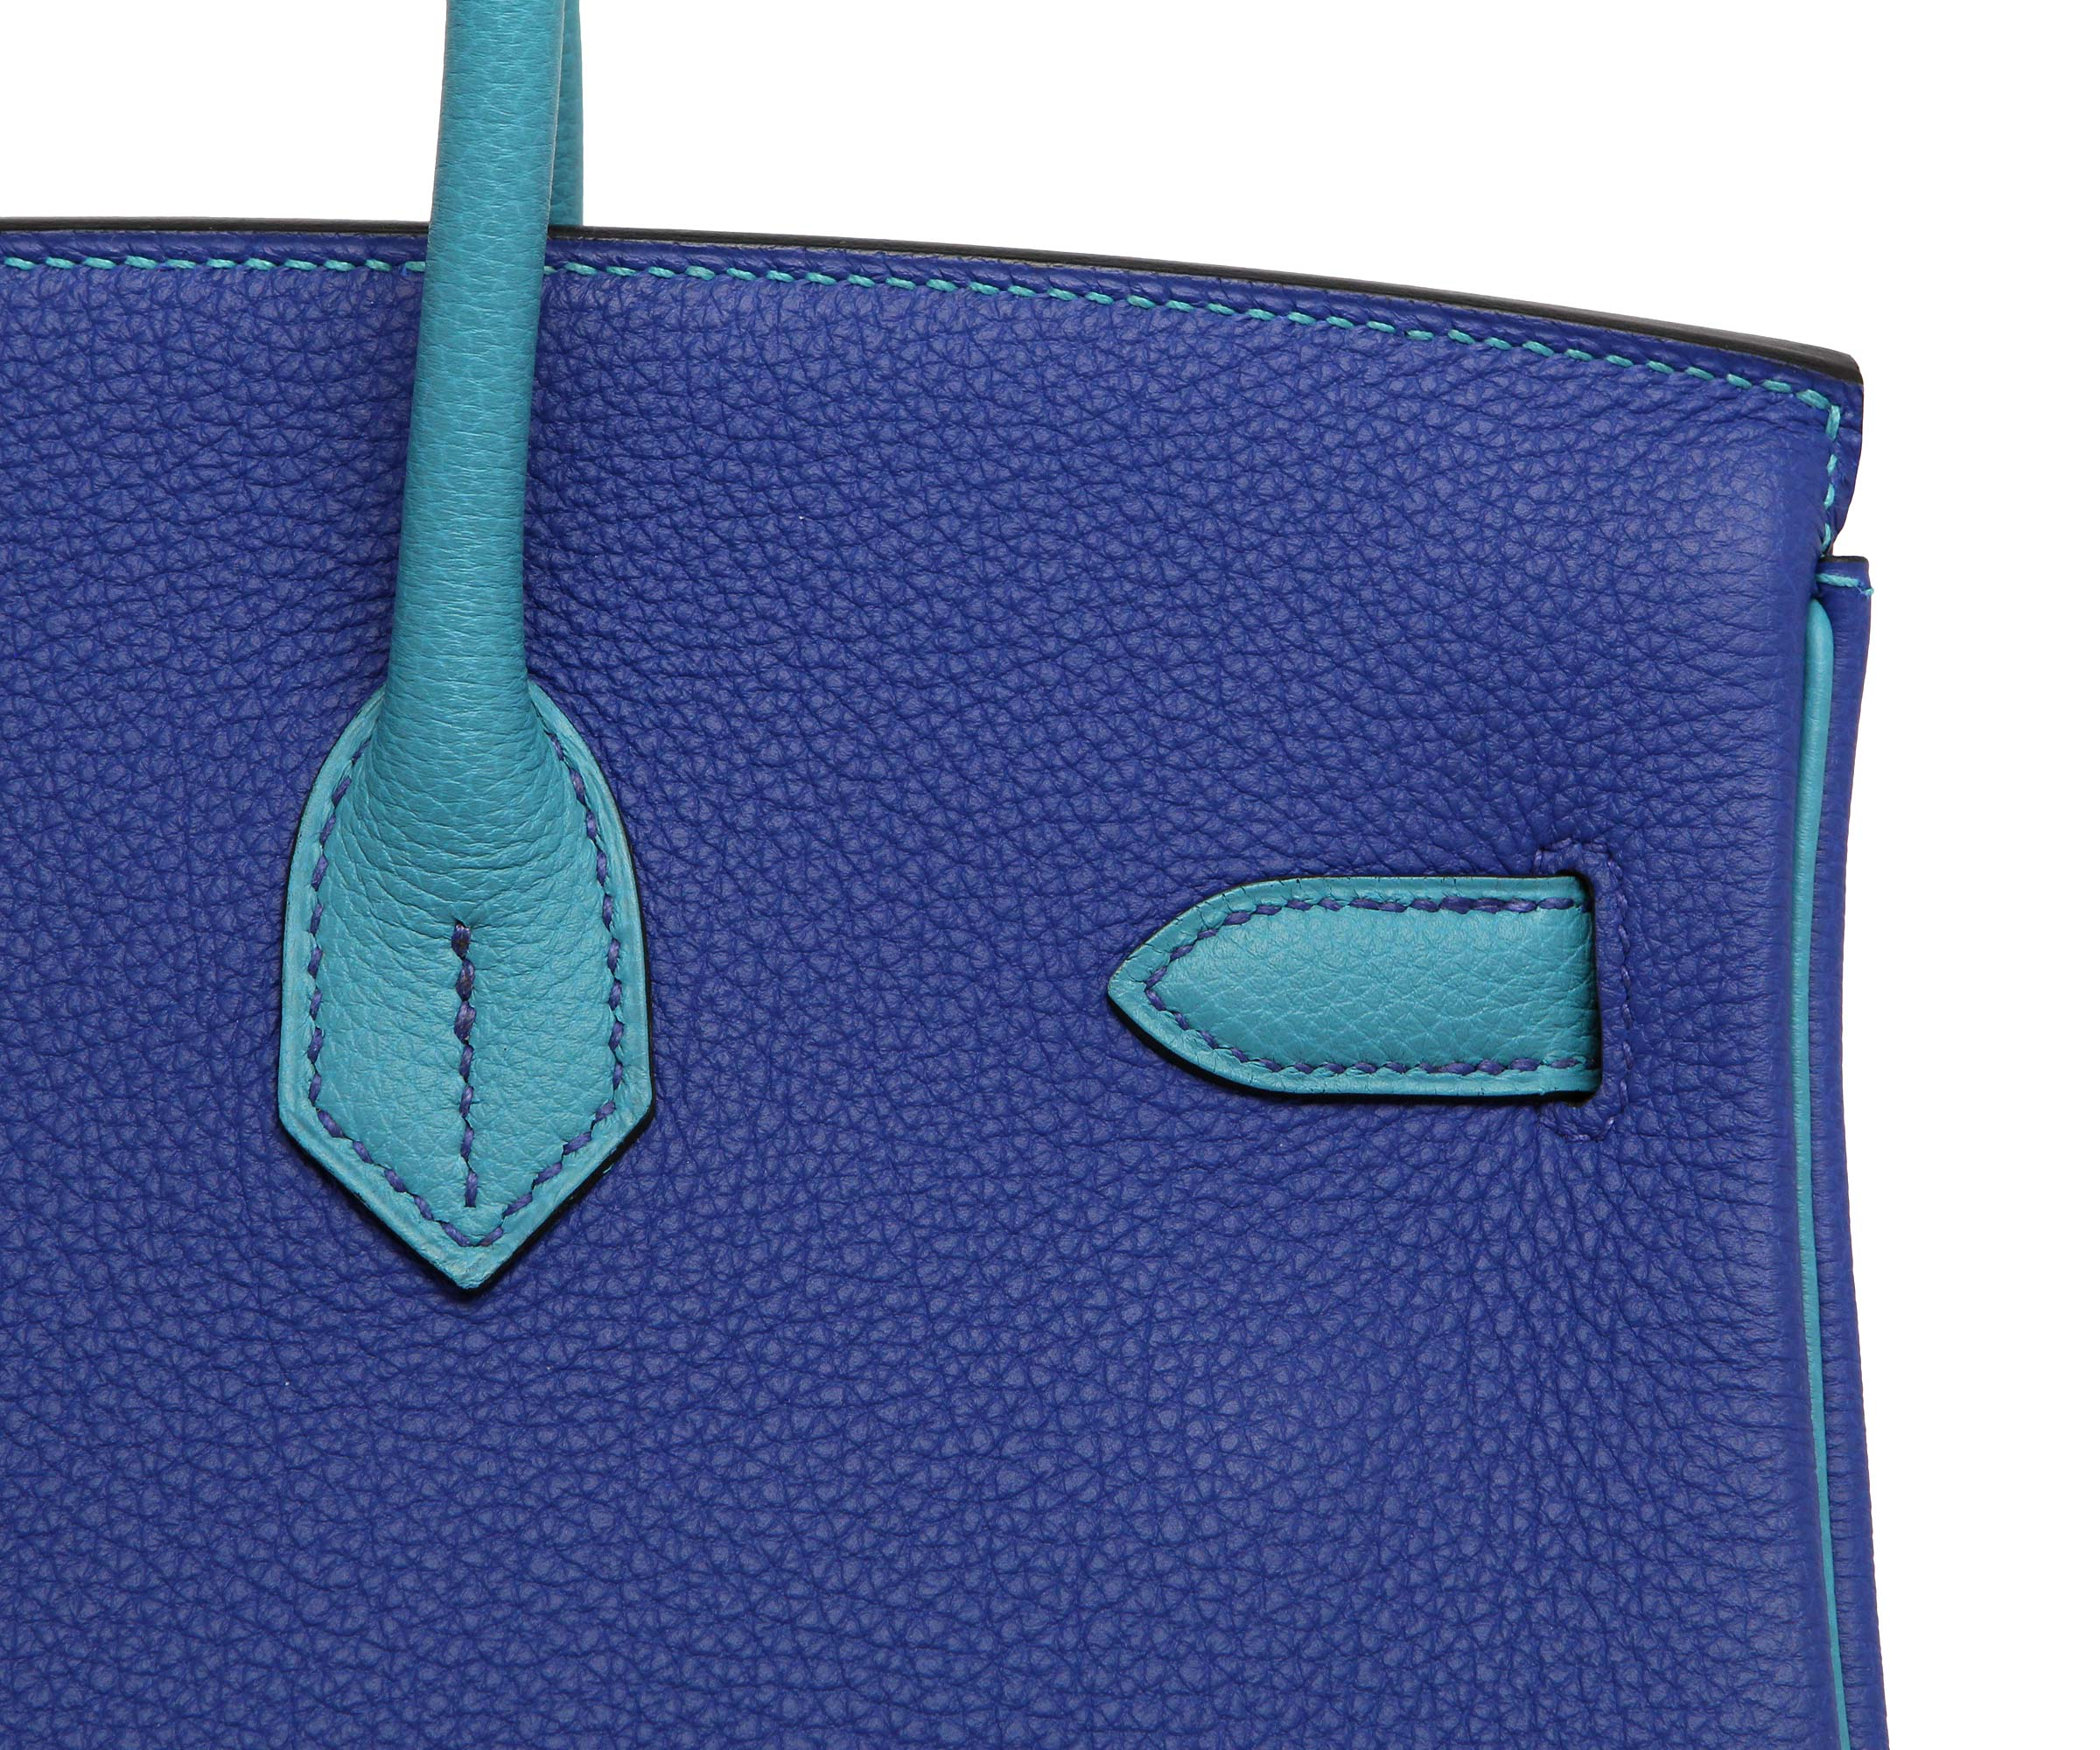 Hermes Birkin Blue Electric & Turquoise Togo with Palladium